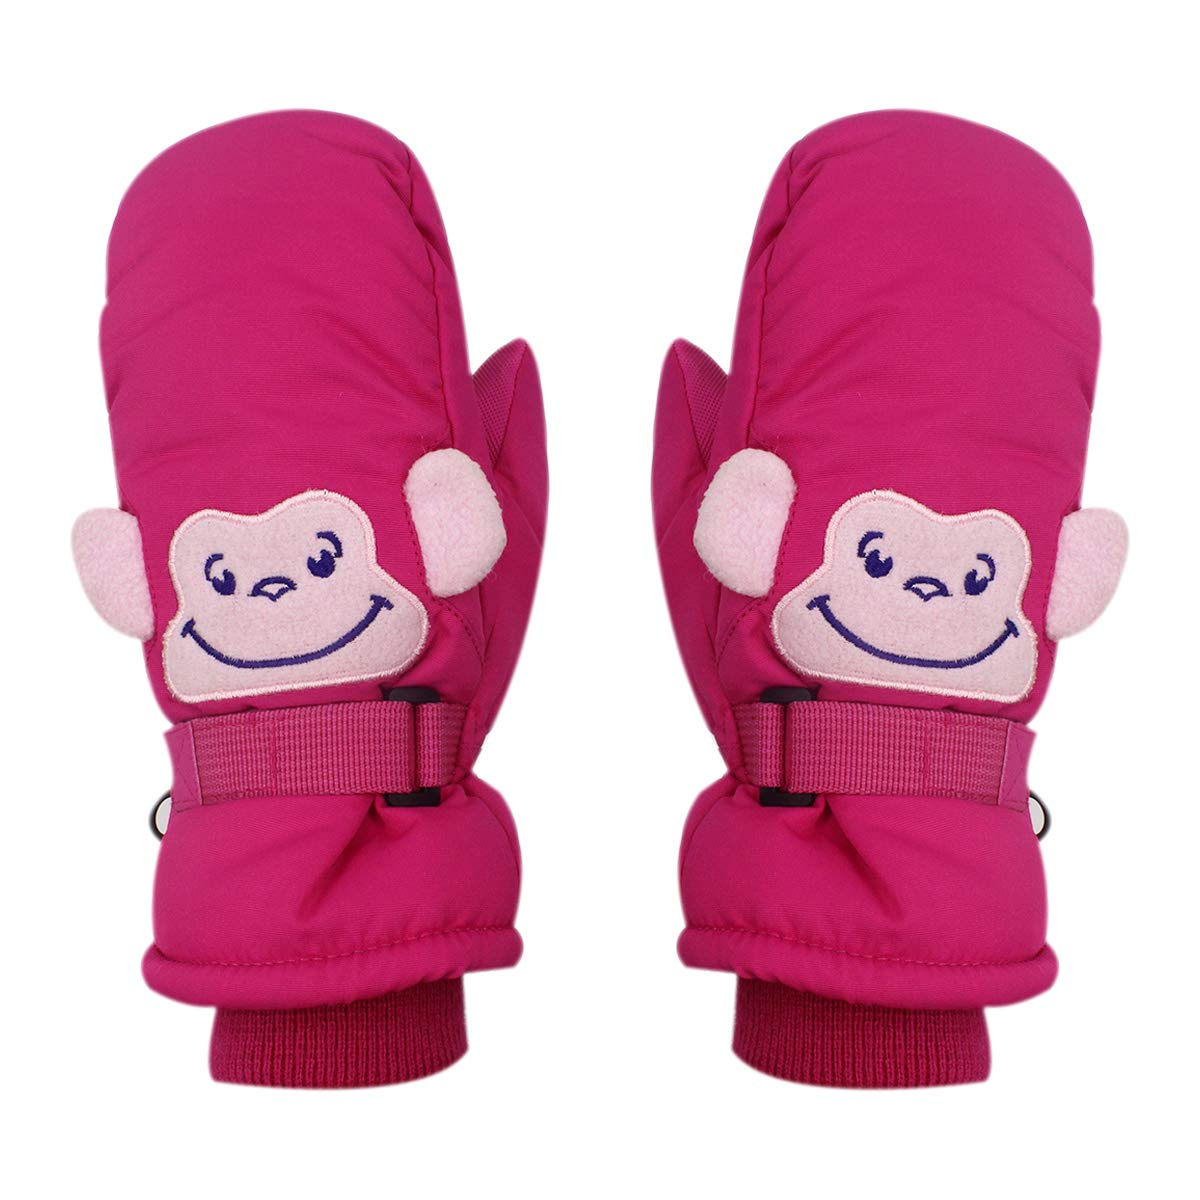 Kids Boys Girls Winter Warm Waterproof Thinsulate Ski Snow Mitten Gloves